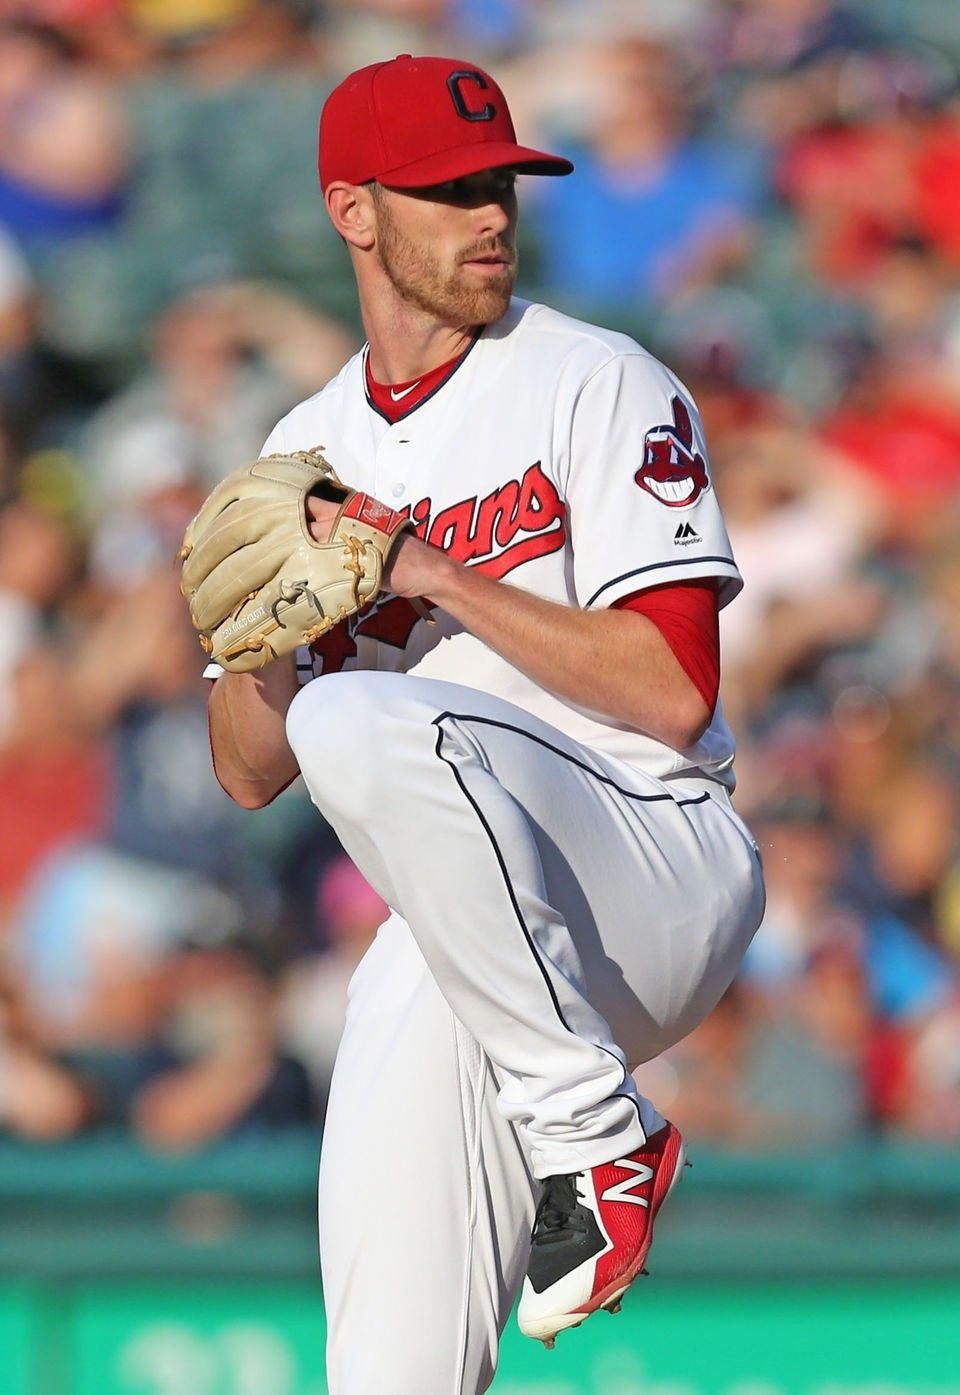 Cleveland Indians Shane Bieber Pitching Against The New York Yankees At Progressive Field July Cleveland Baseball Indians Baseball Cleveland Indians Baseball